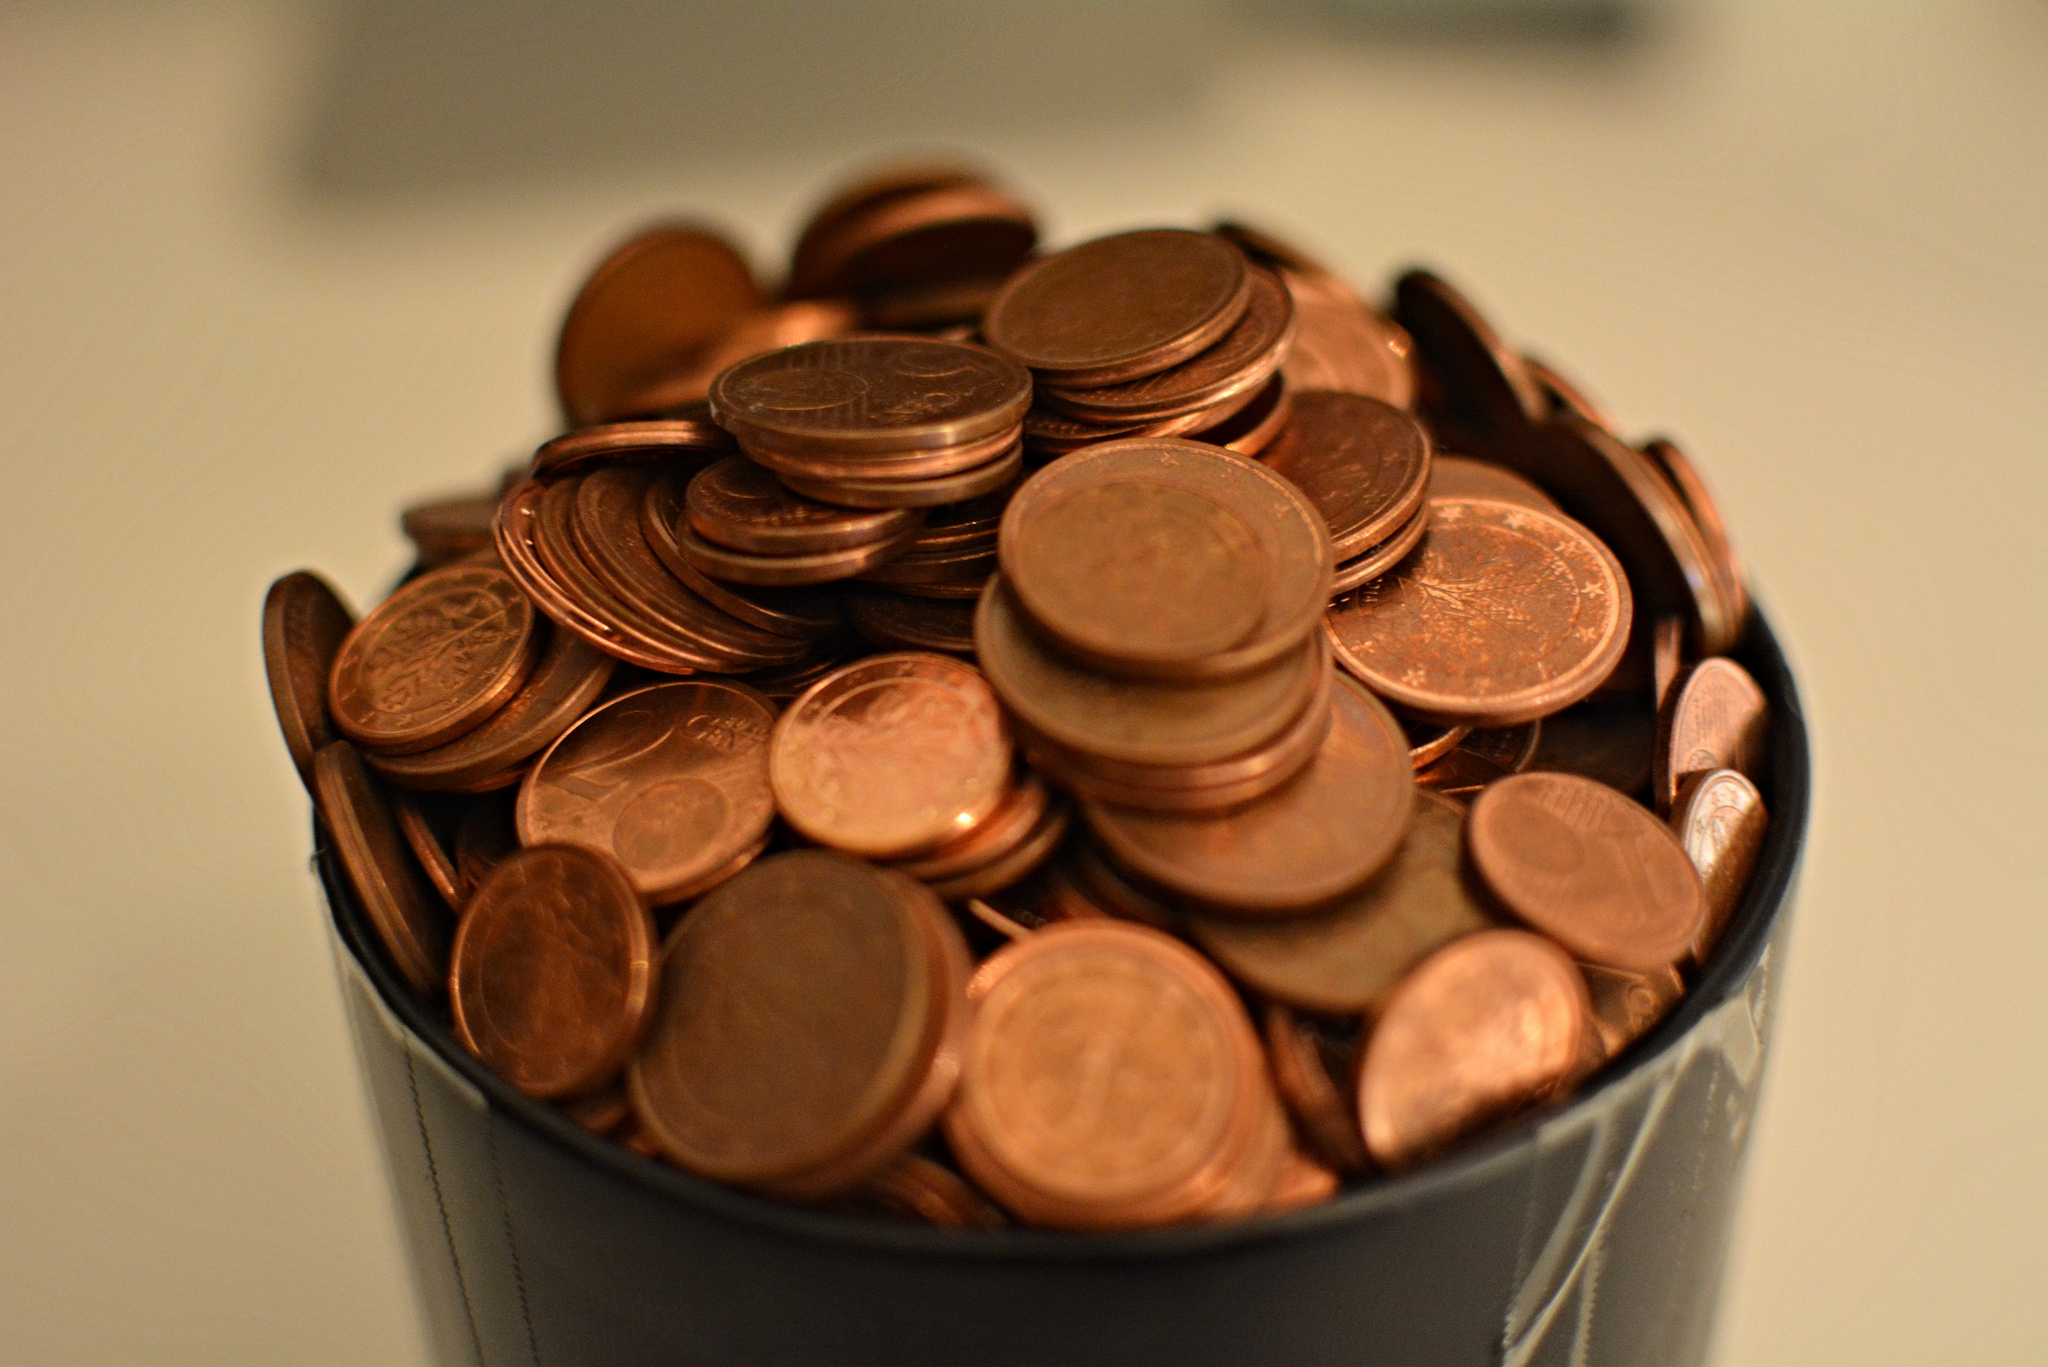 pilled-up-euro-cent-coins